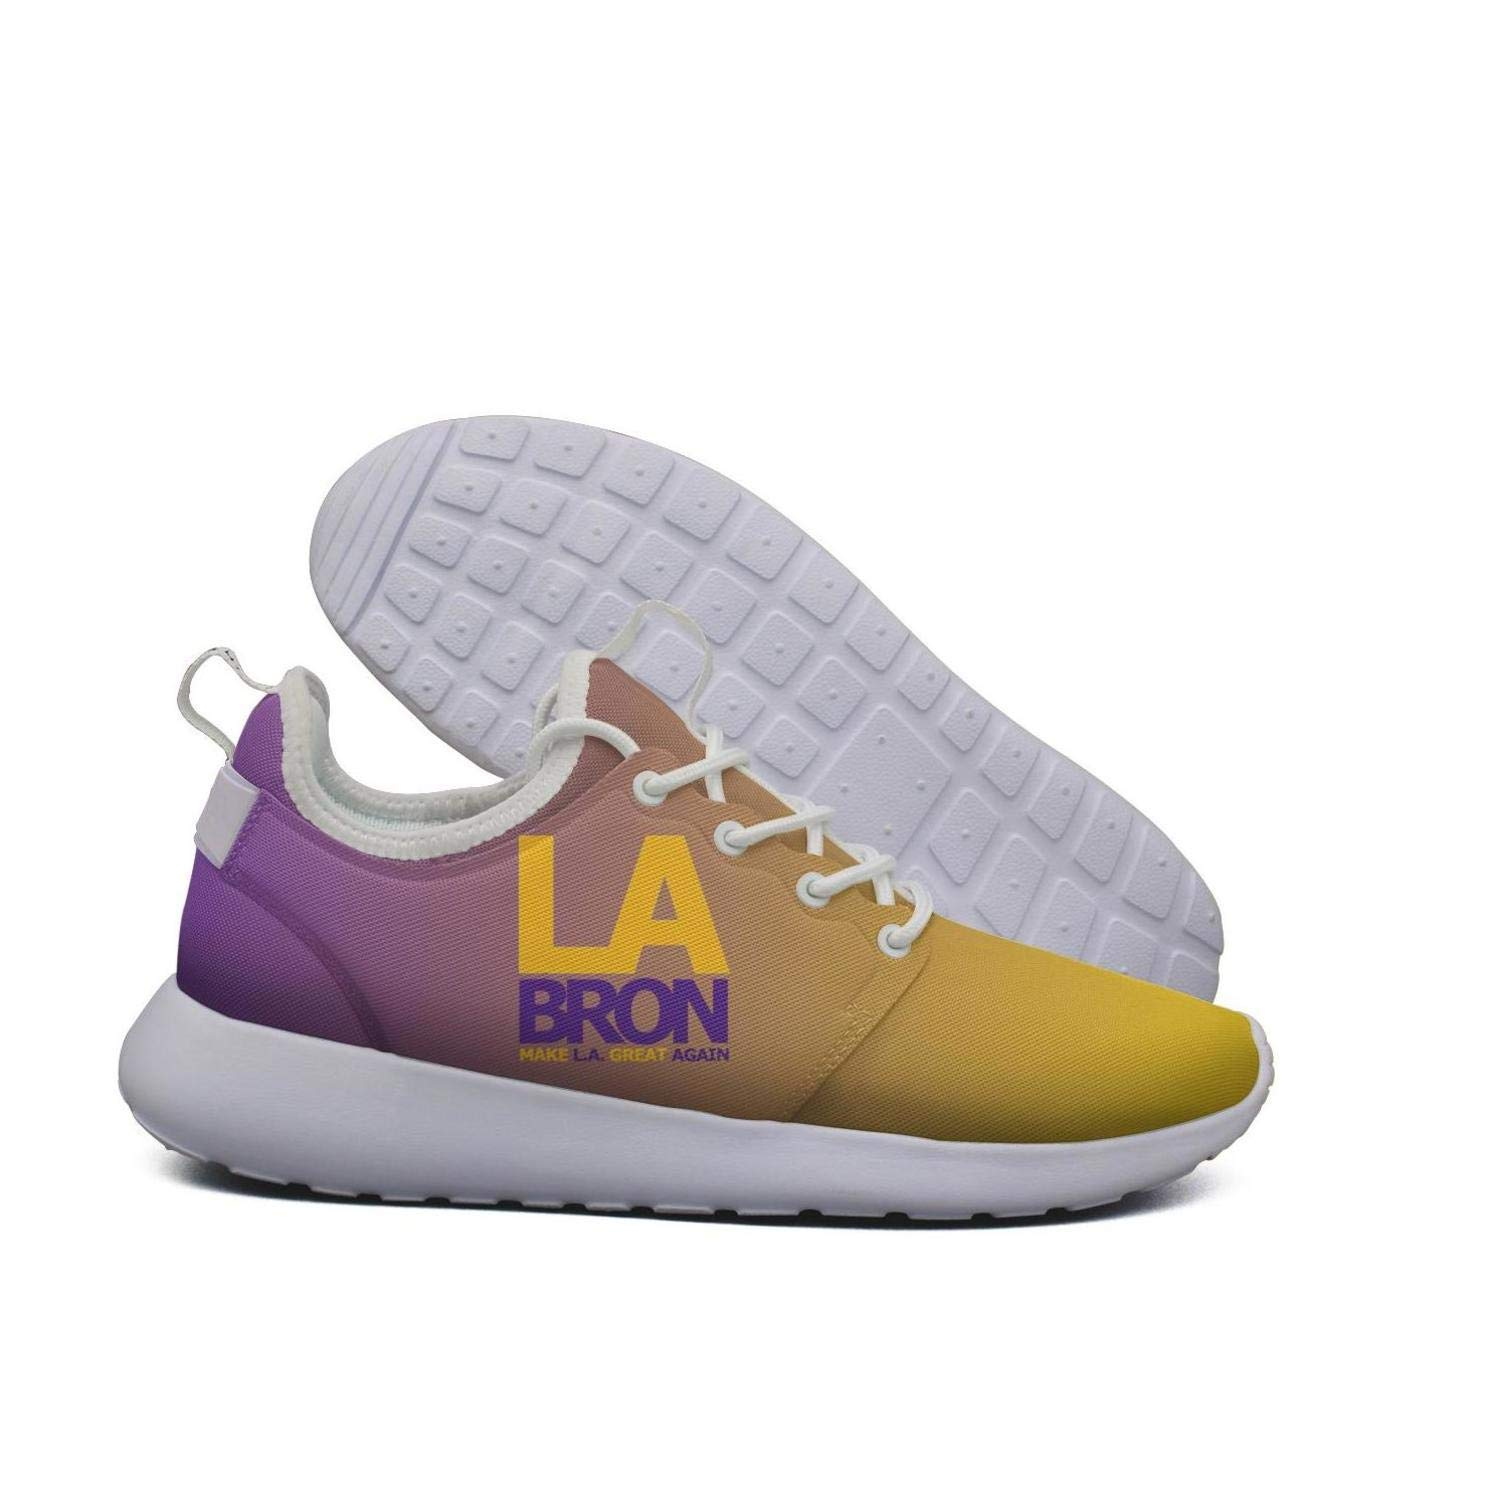 new product 9ddb1 c9a16 Get Quotations · Womens Roshe Two Lightweight La-bron Make LA Great Again  Soft Running Sneakers mesh Shoes